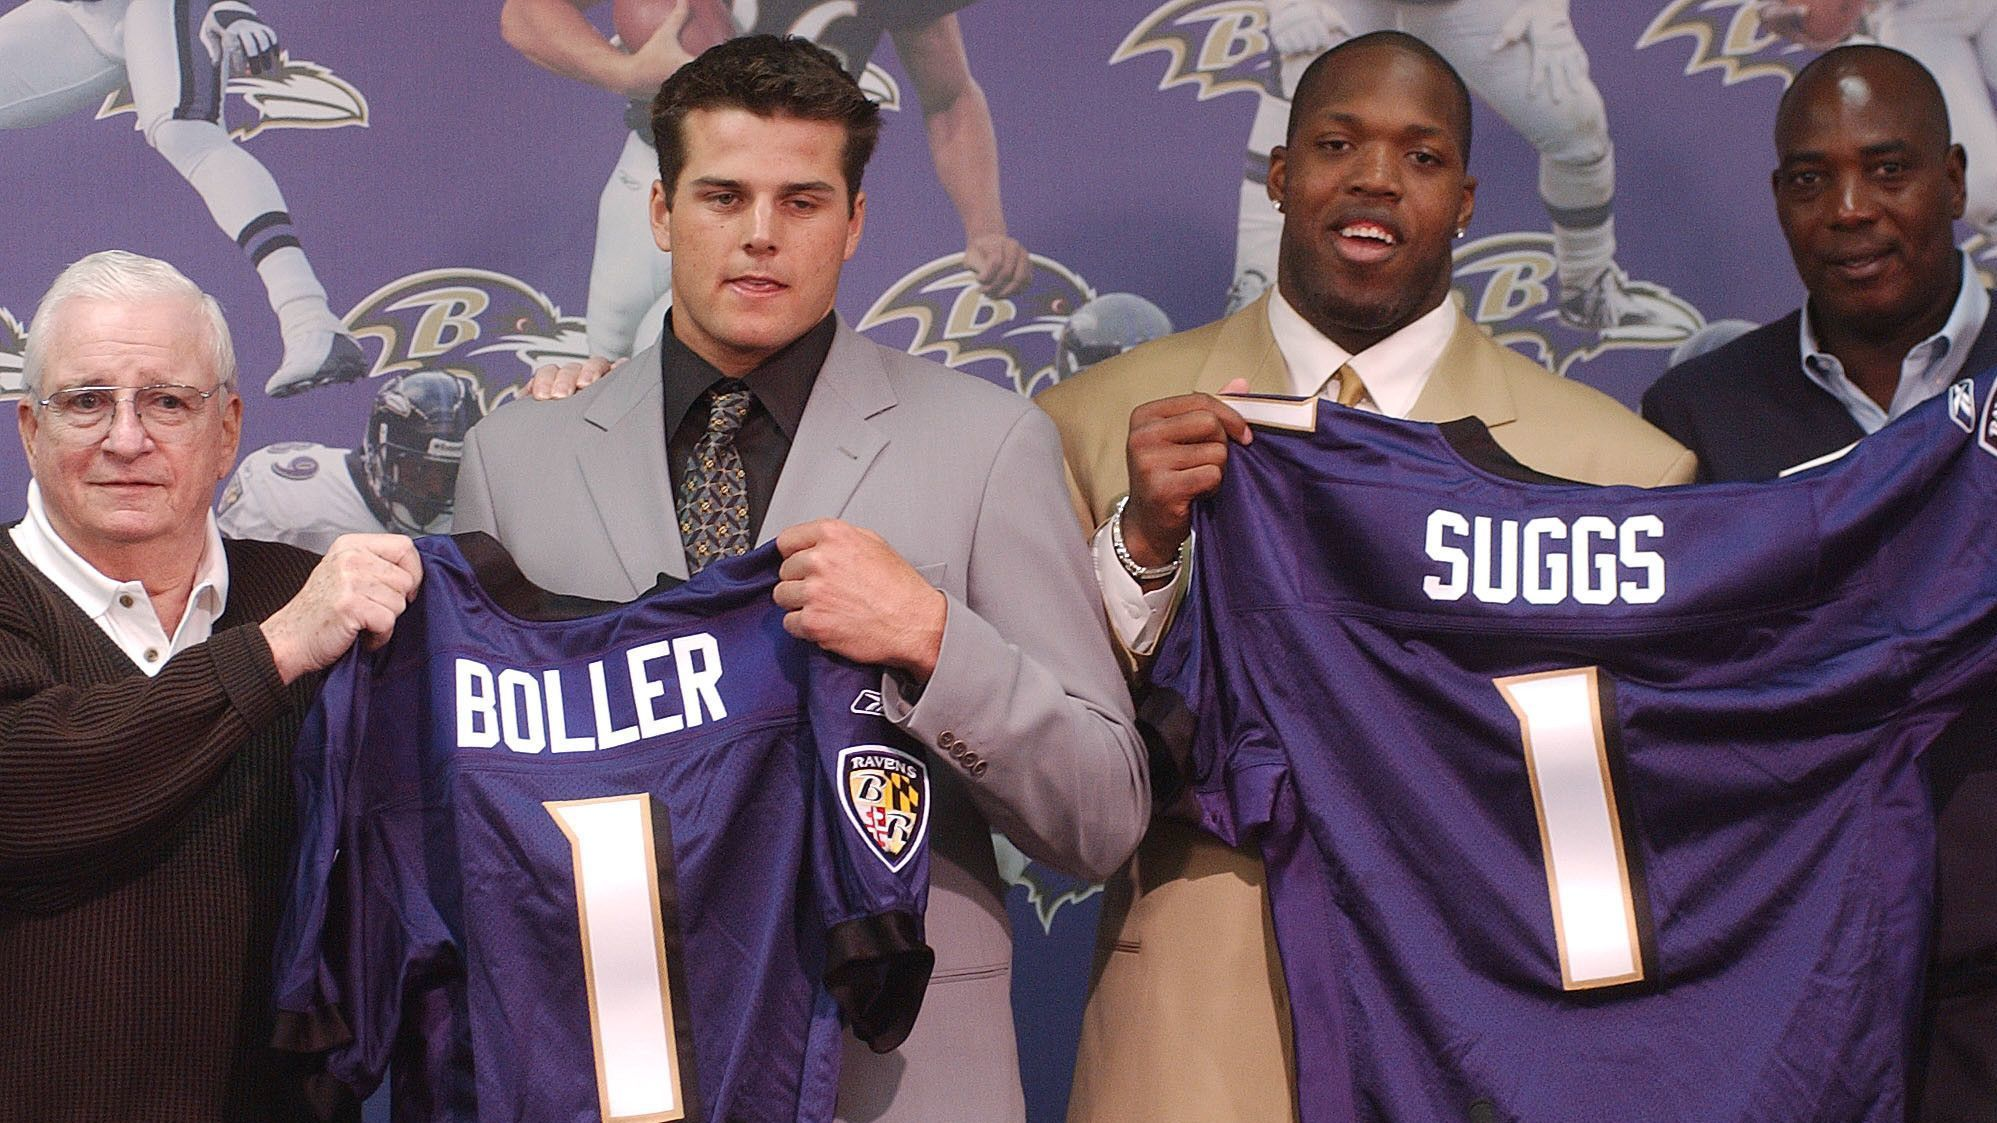 This week in Baltimore sports history (April 21-27): Ravens select Terrell Suggs in 2003 NFL draft